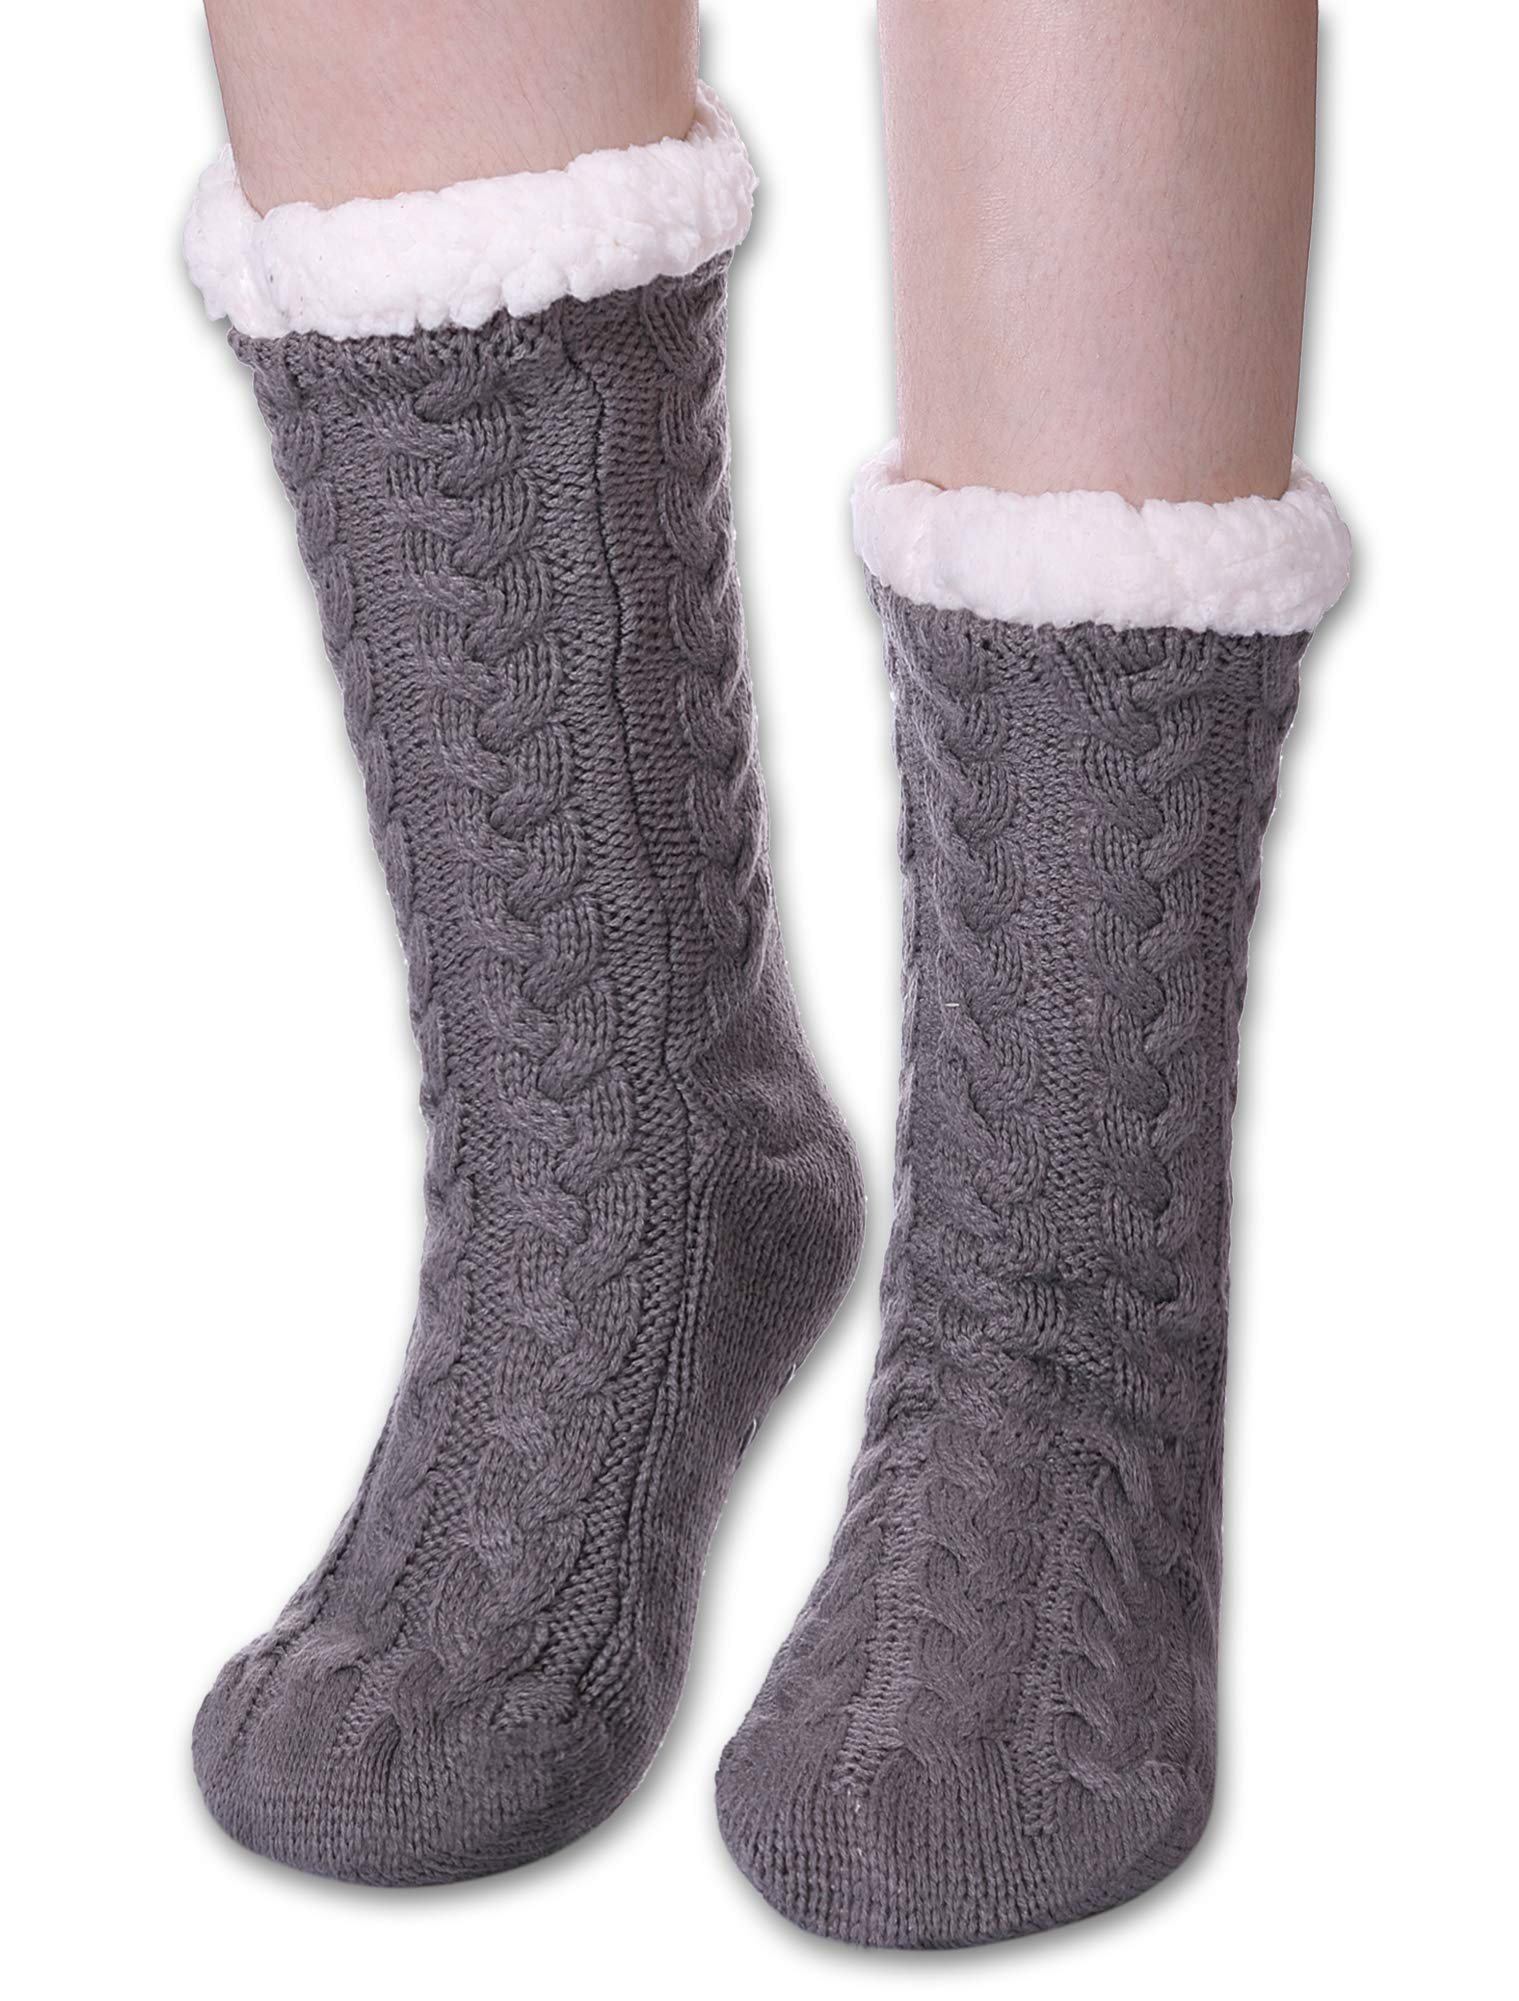 LANLEO Womens Fuzzy Slipper Socks Winter Soft Thick Warm Fleece Lining Cable Knit Christmas Socks with Grippers